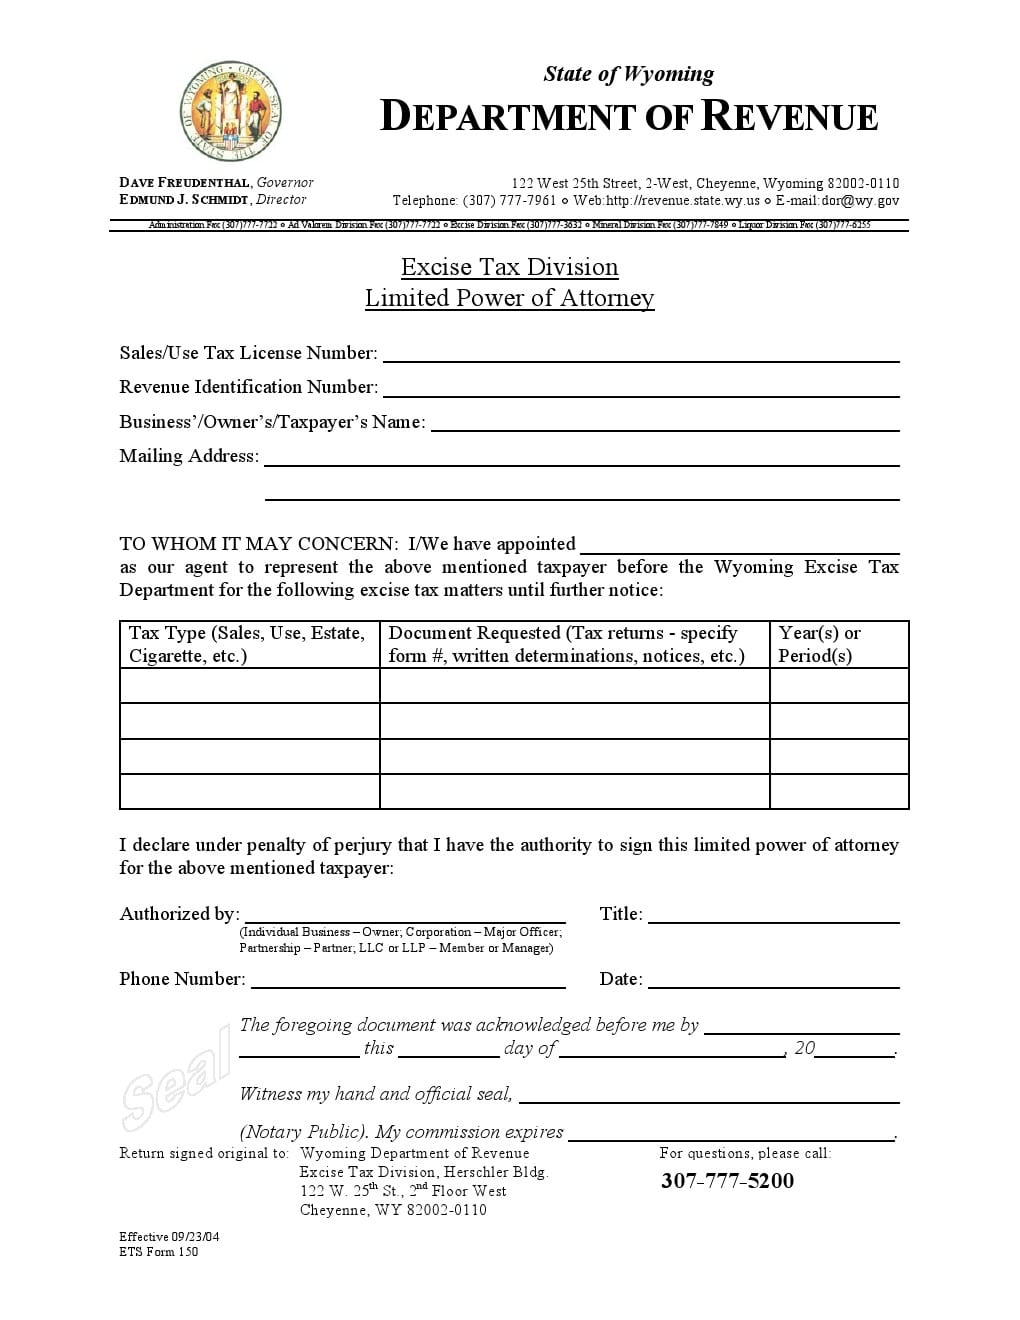 Free wyoming power of attorney forms adobe pdf word for Power of attorney to execute motor vehicle documents